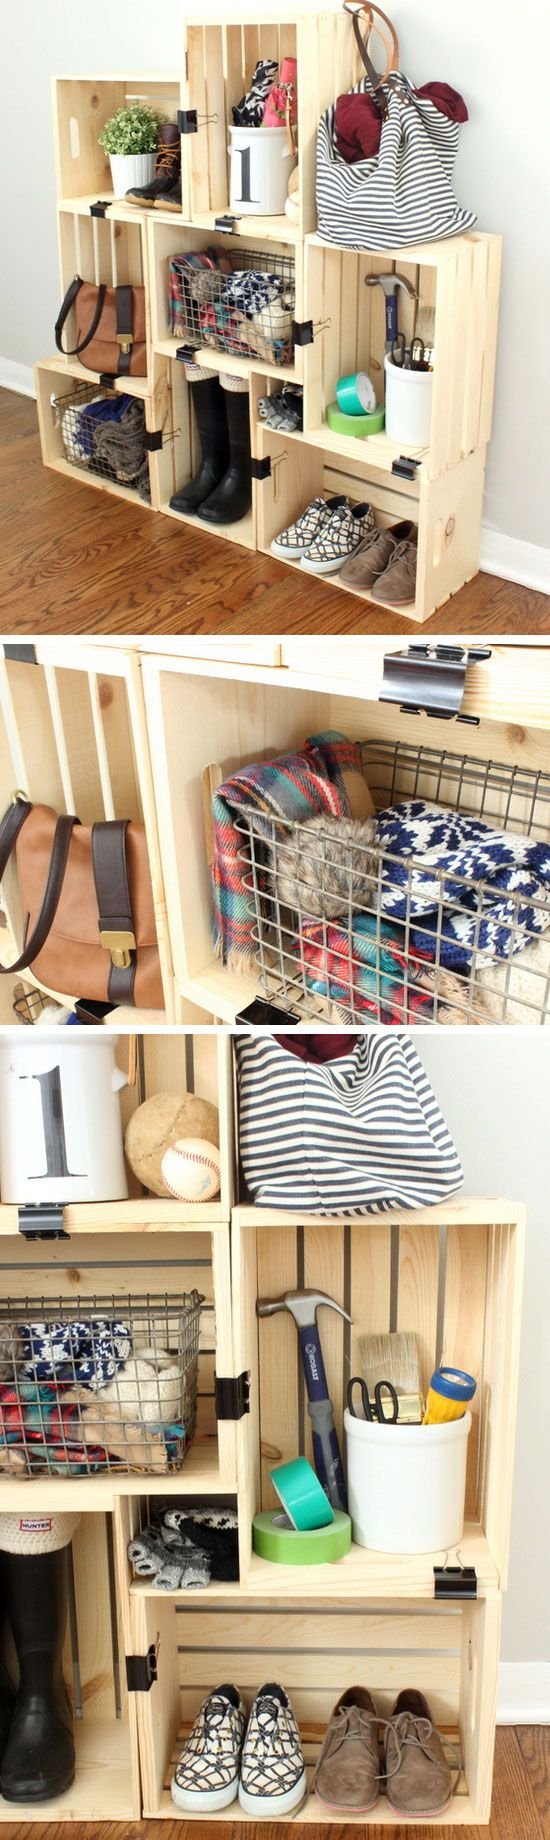 20 small apartment organization ideas on pinterest small apartment